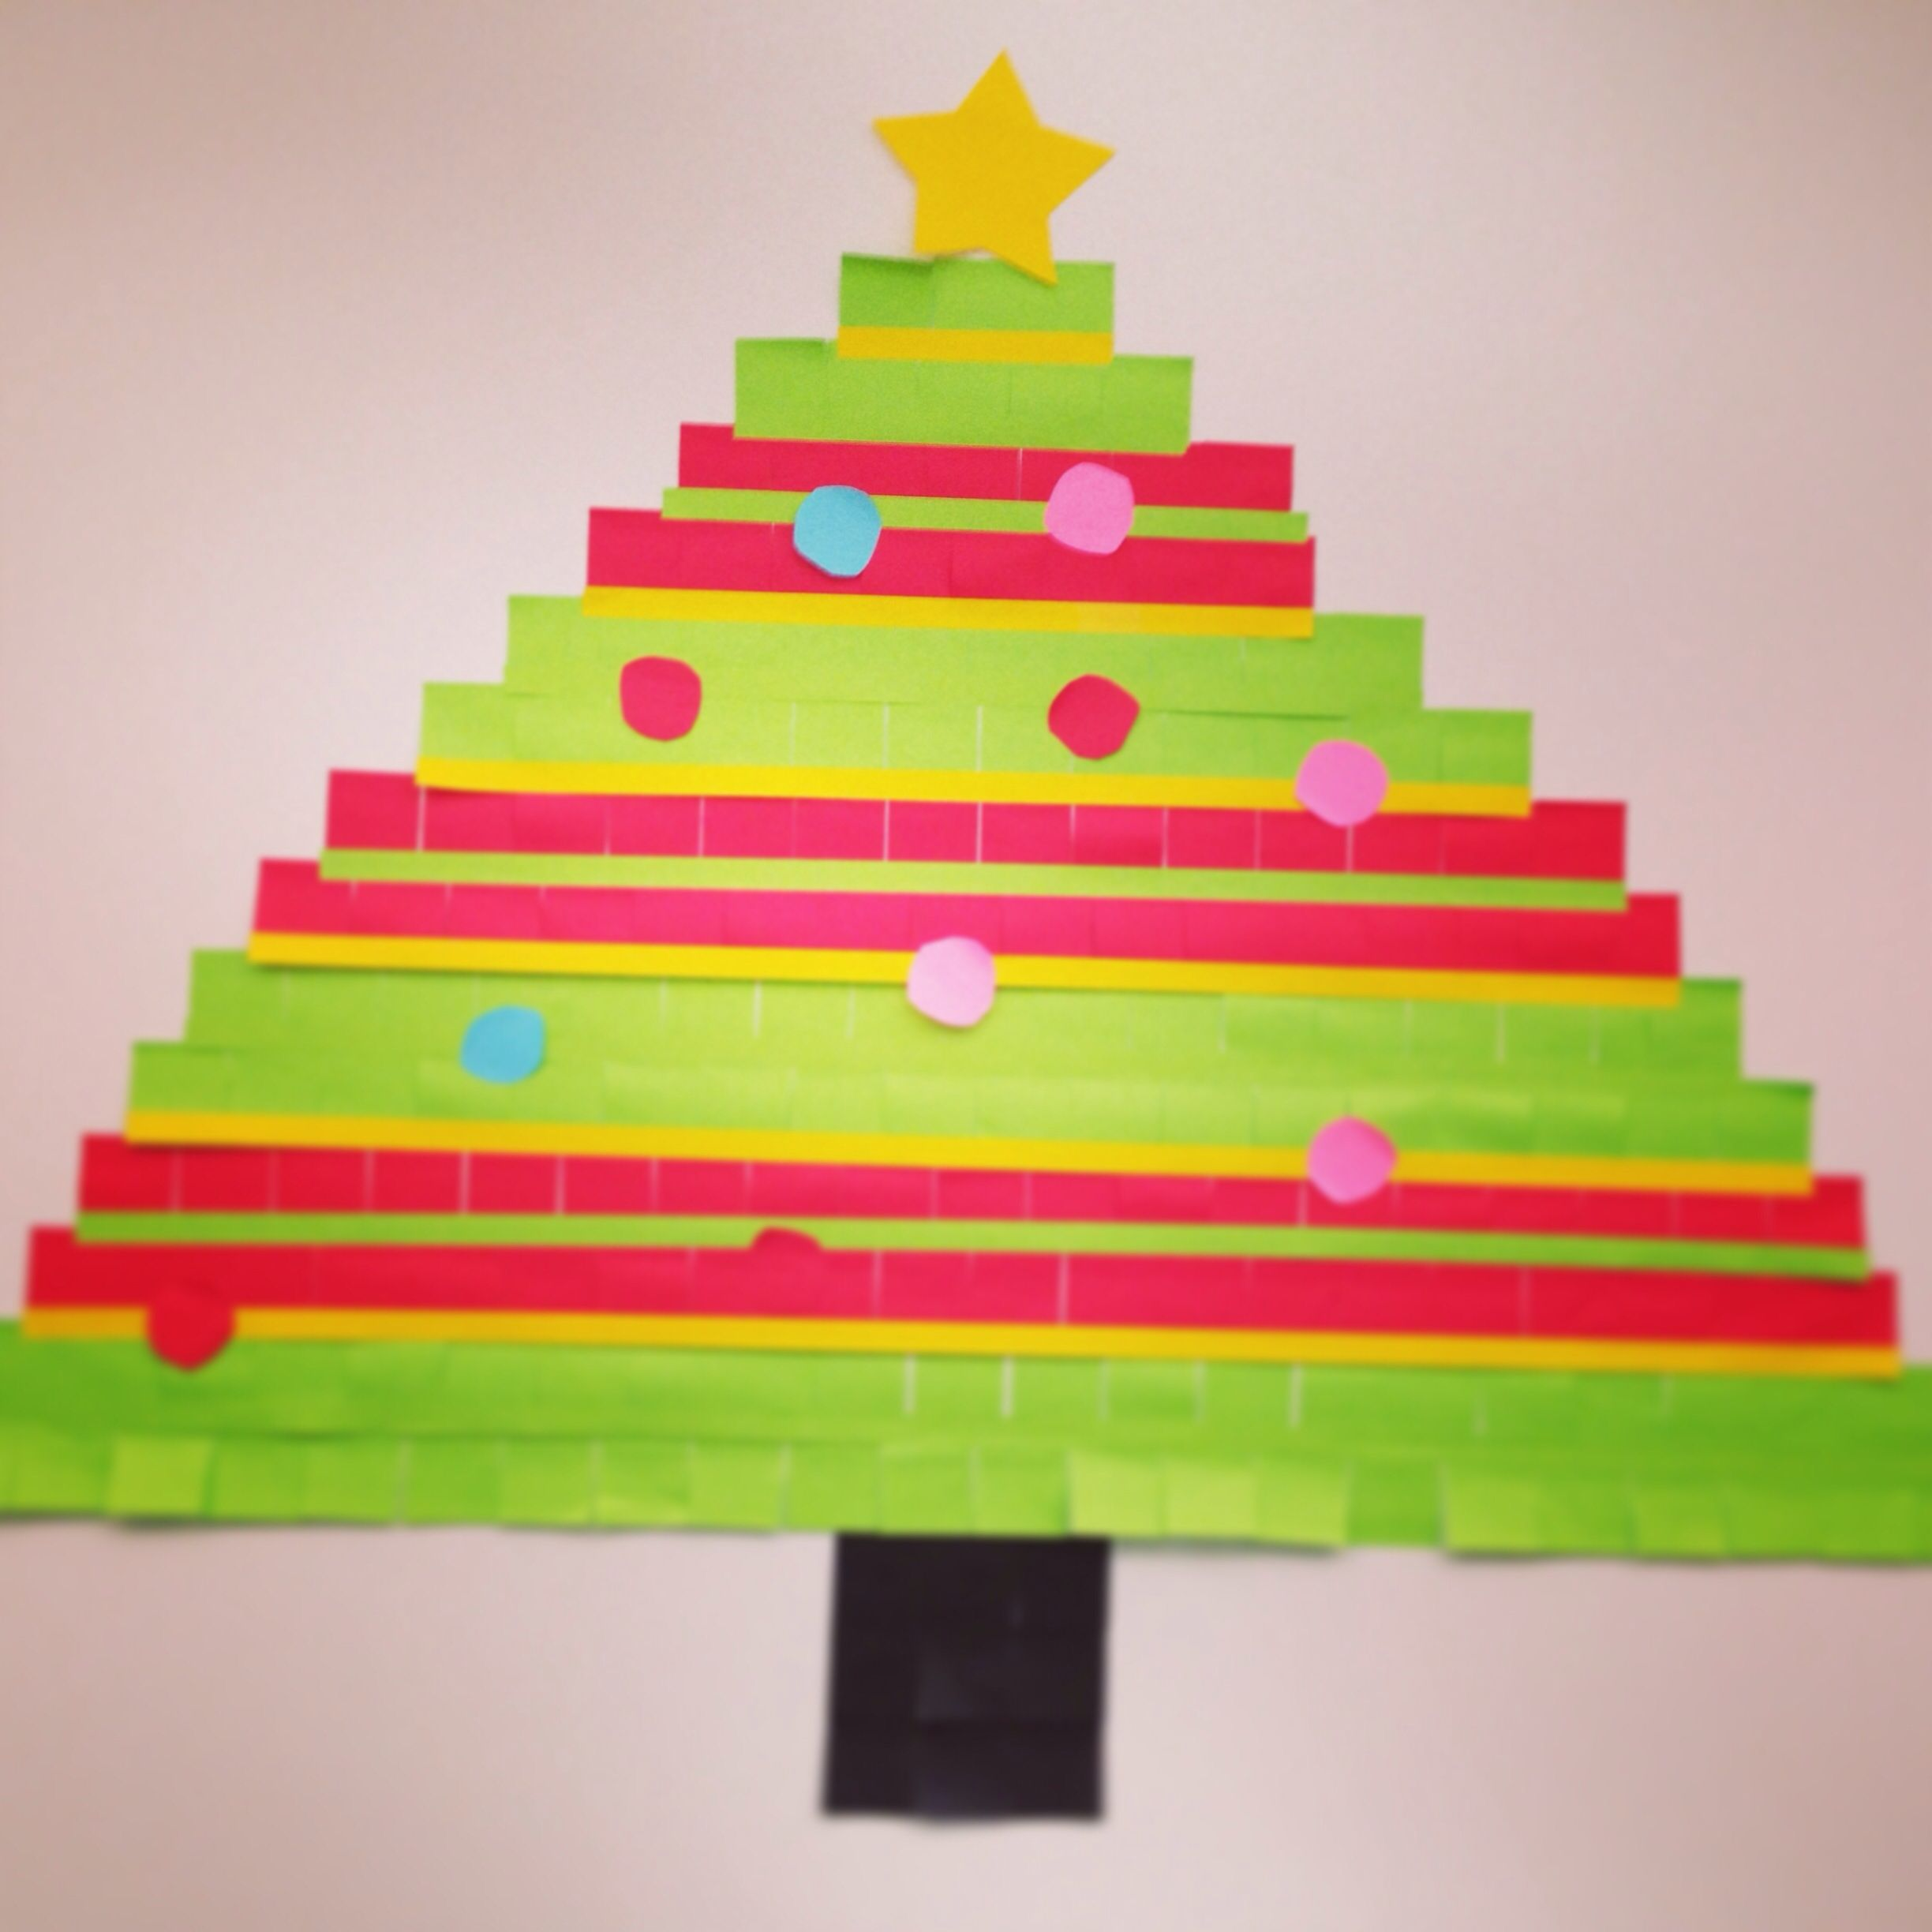 I Get It A Christmas Tree Is Little For Dorm But How About Post